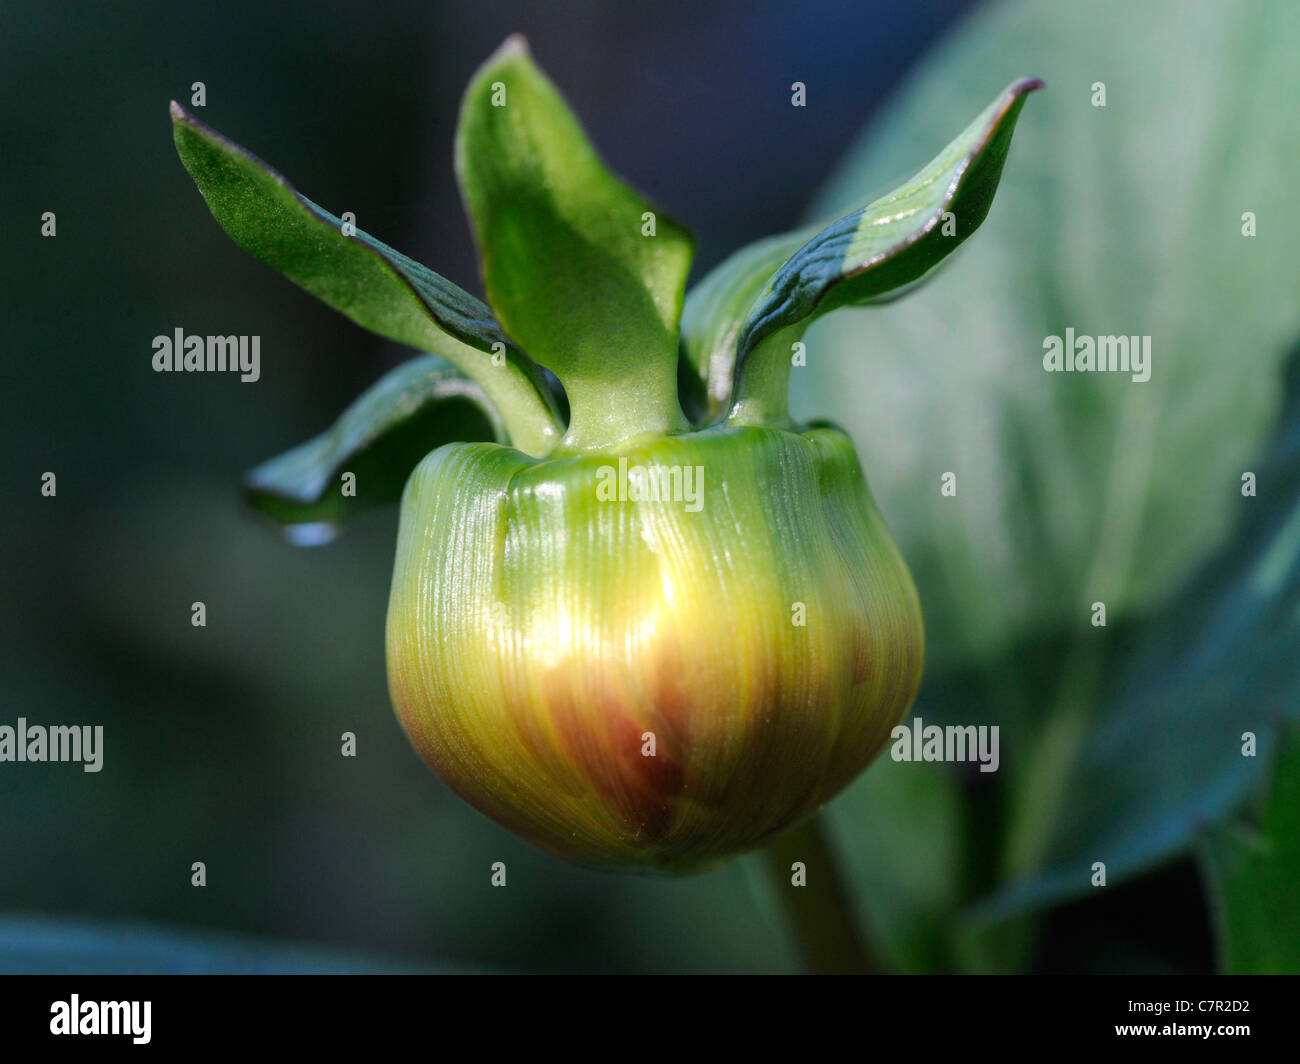 A large dahlia bud that is yet to open - Stock Image